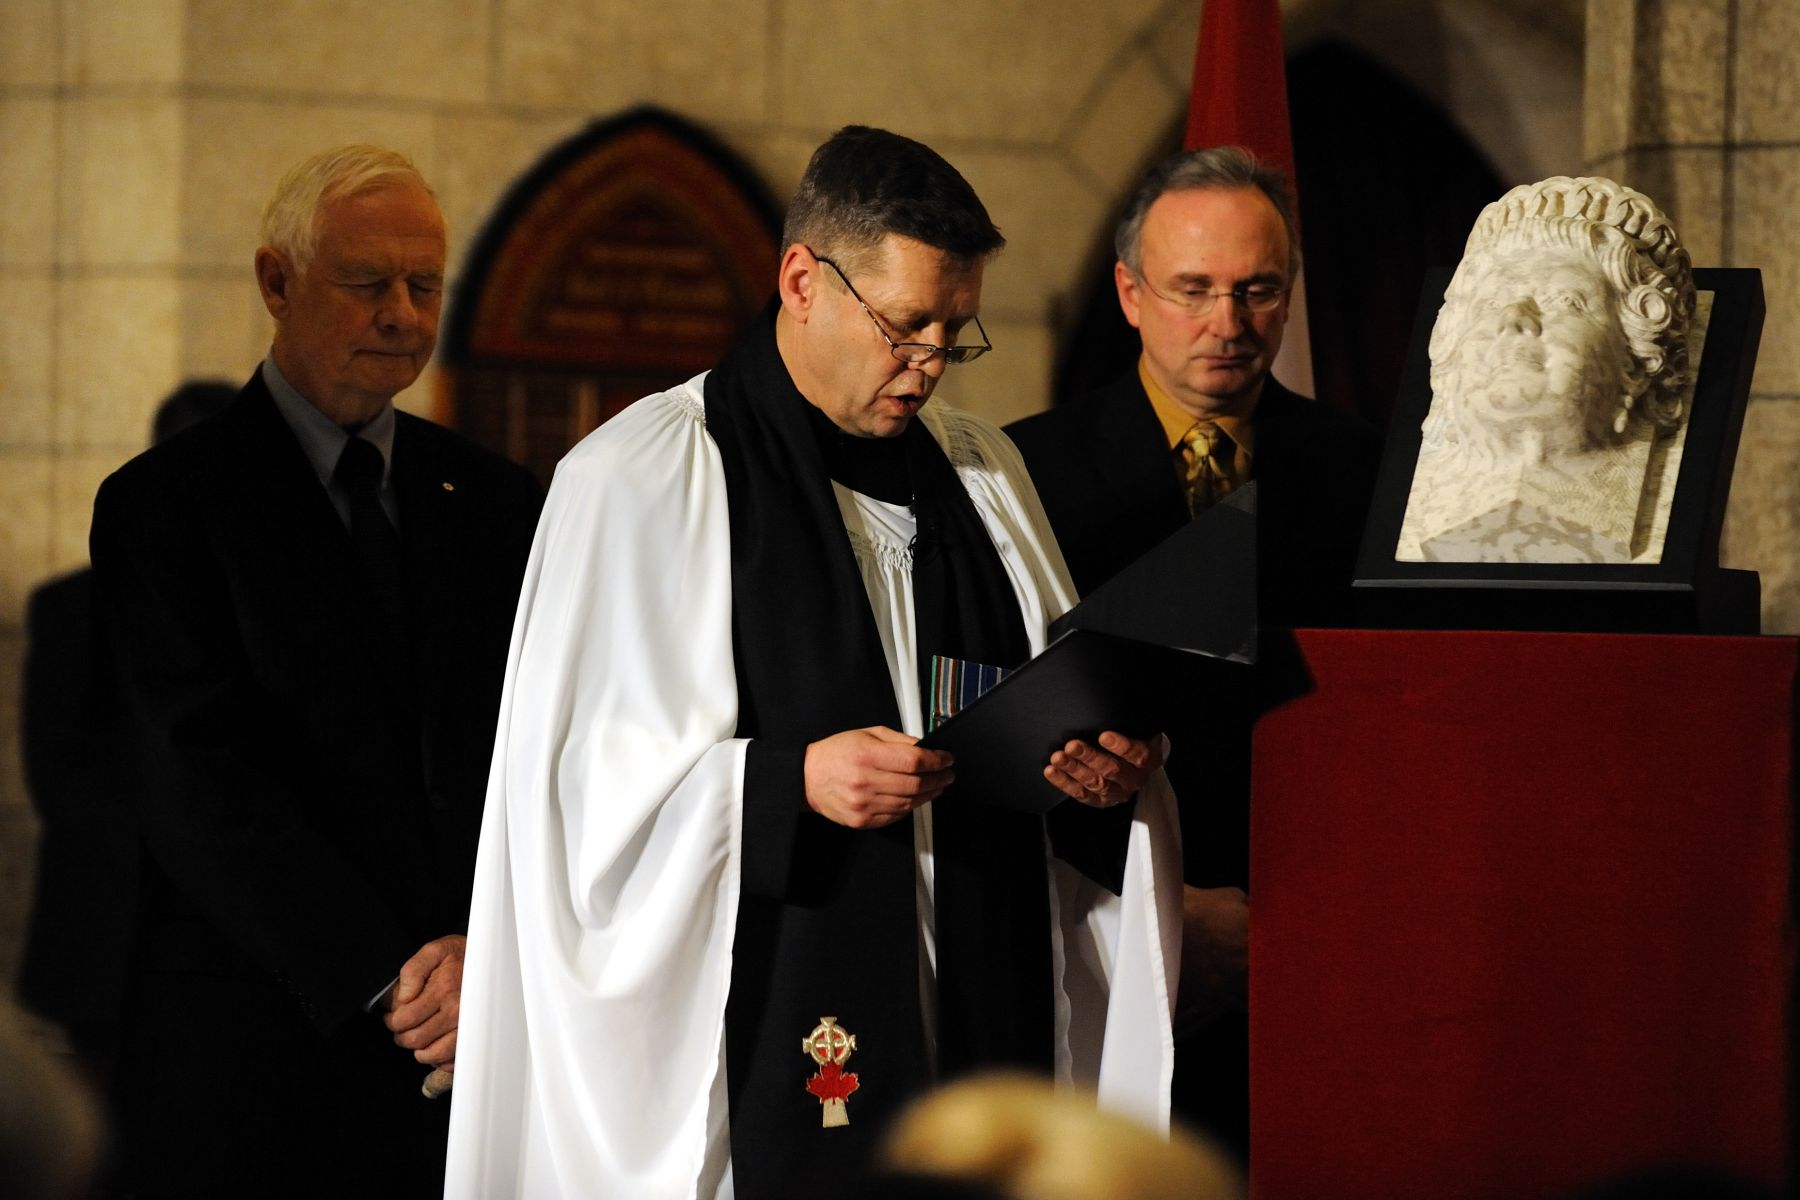 Chaplain General of the Canadian Forces, Brigadier-General Karl McLean, proceeded with a prayer of dedication. The corbel will be added to the Sovereigns' Arches, located in front of the Senate Chamber.